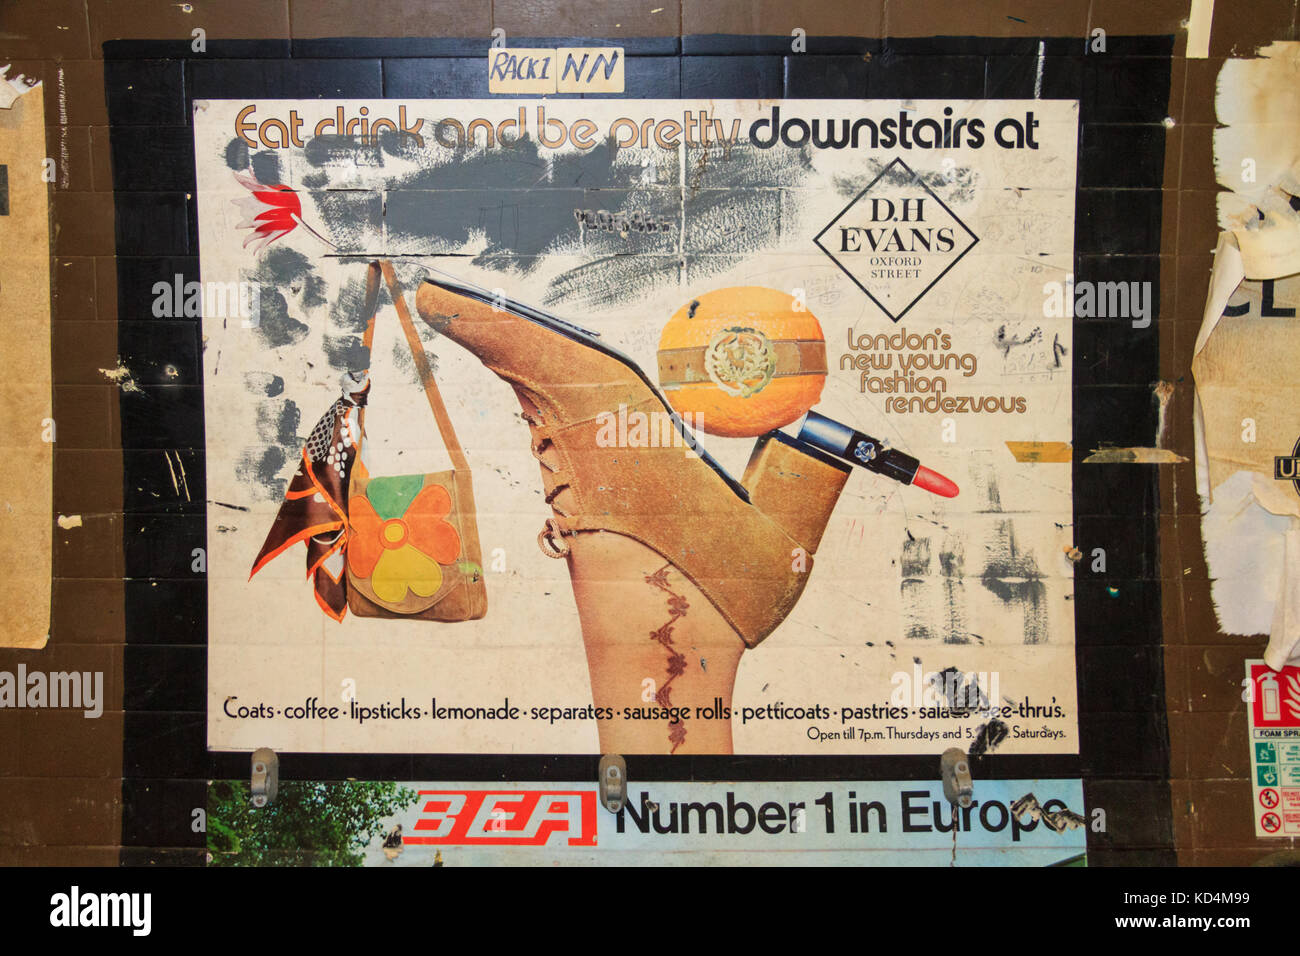 Vintage advertising posters for DH Evans and BEA on wall in old closed underground station, London - Stock Image